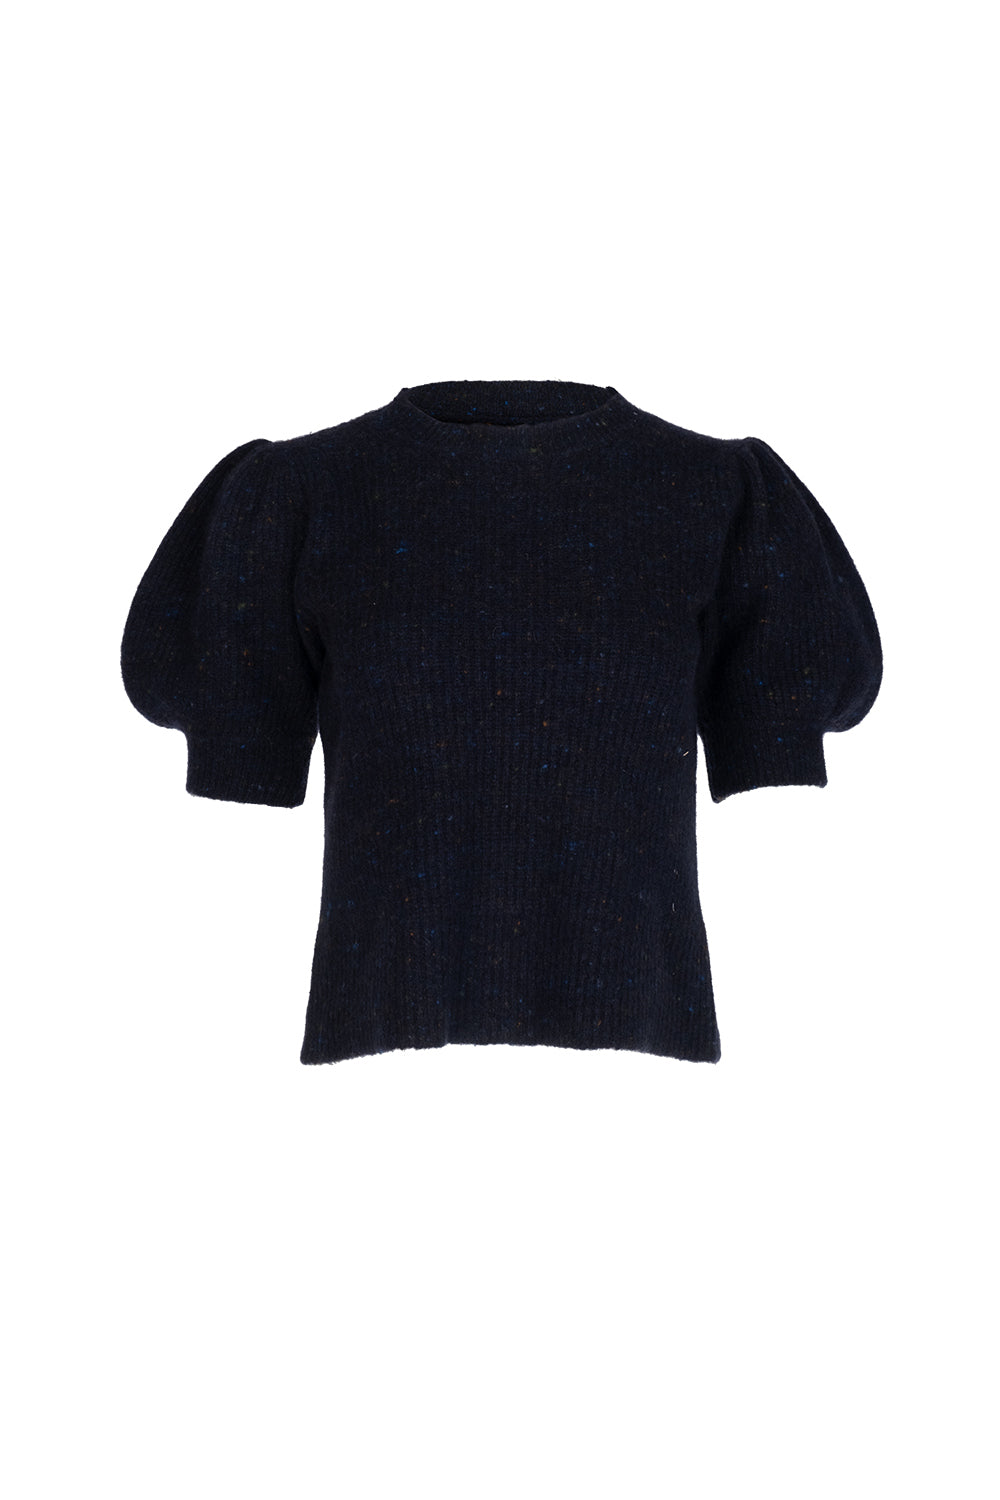 Cleo Pullover - Navy Fleck